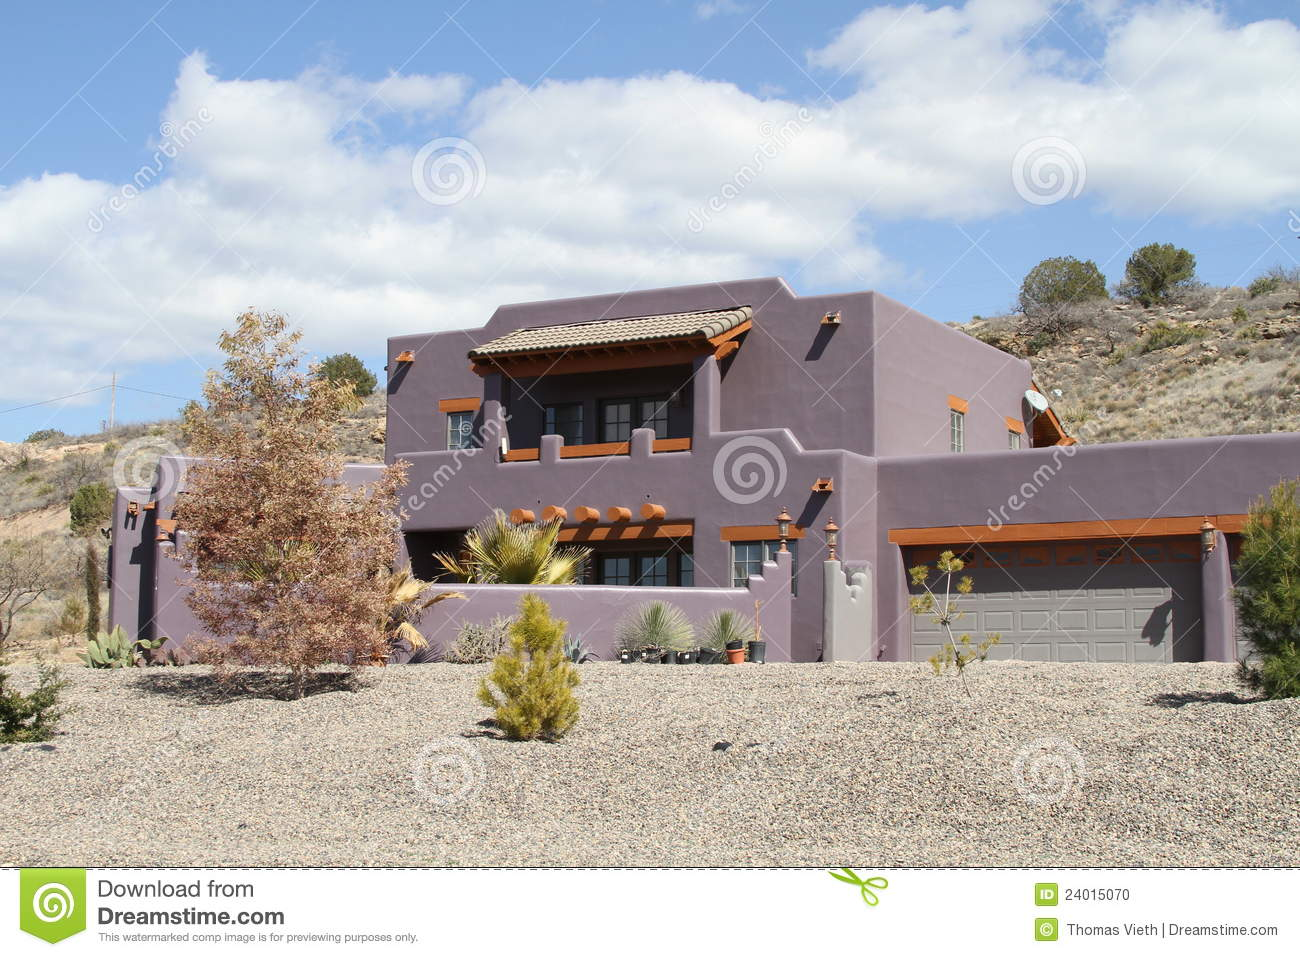 Usa Arizona New Adobe House In A Desert Stock Photo